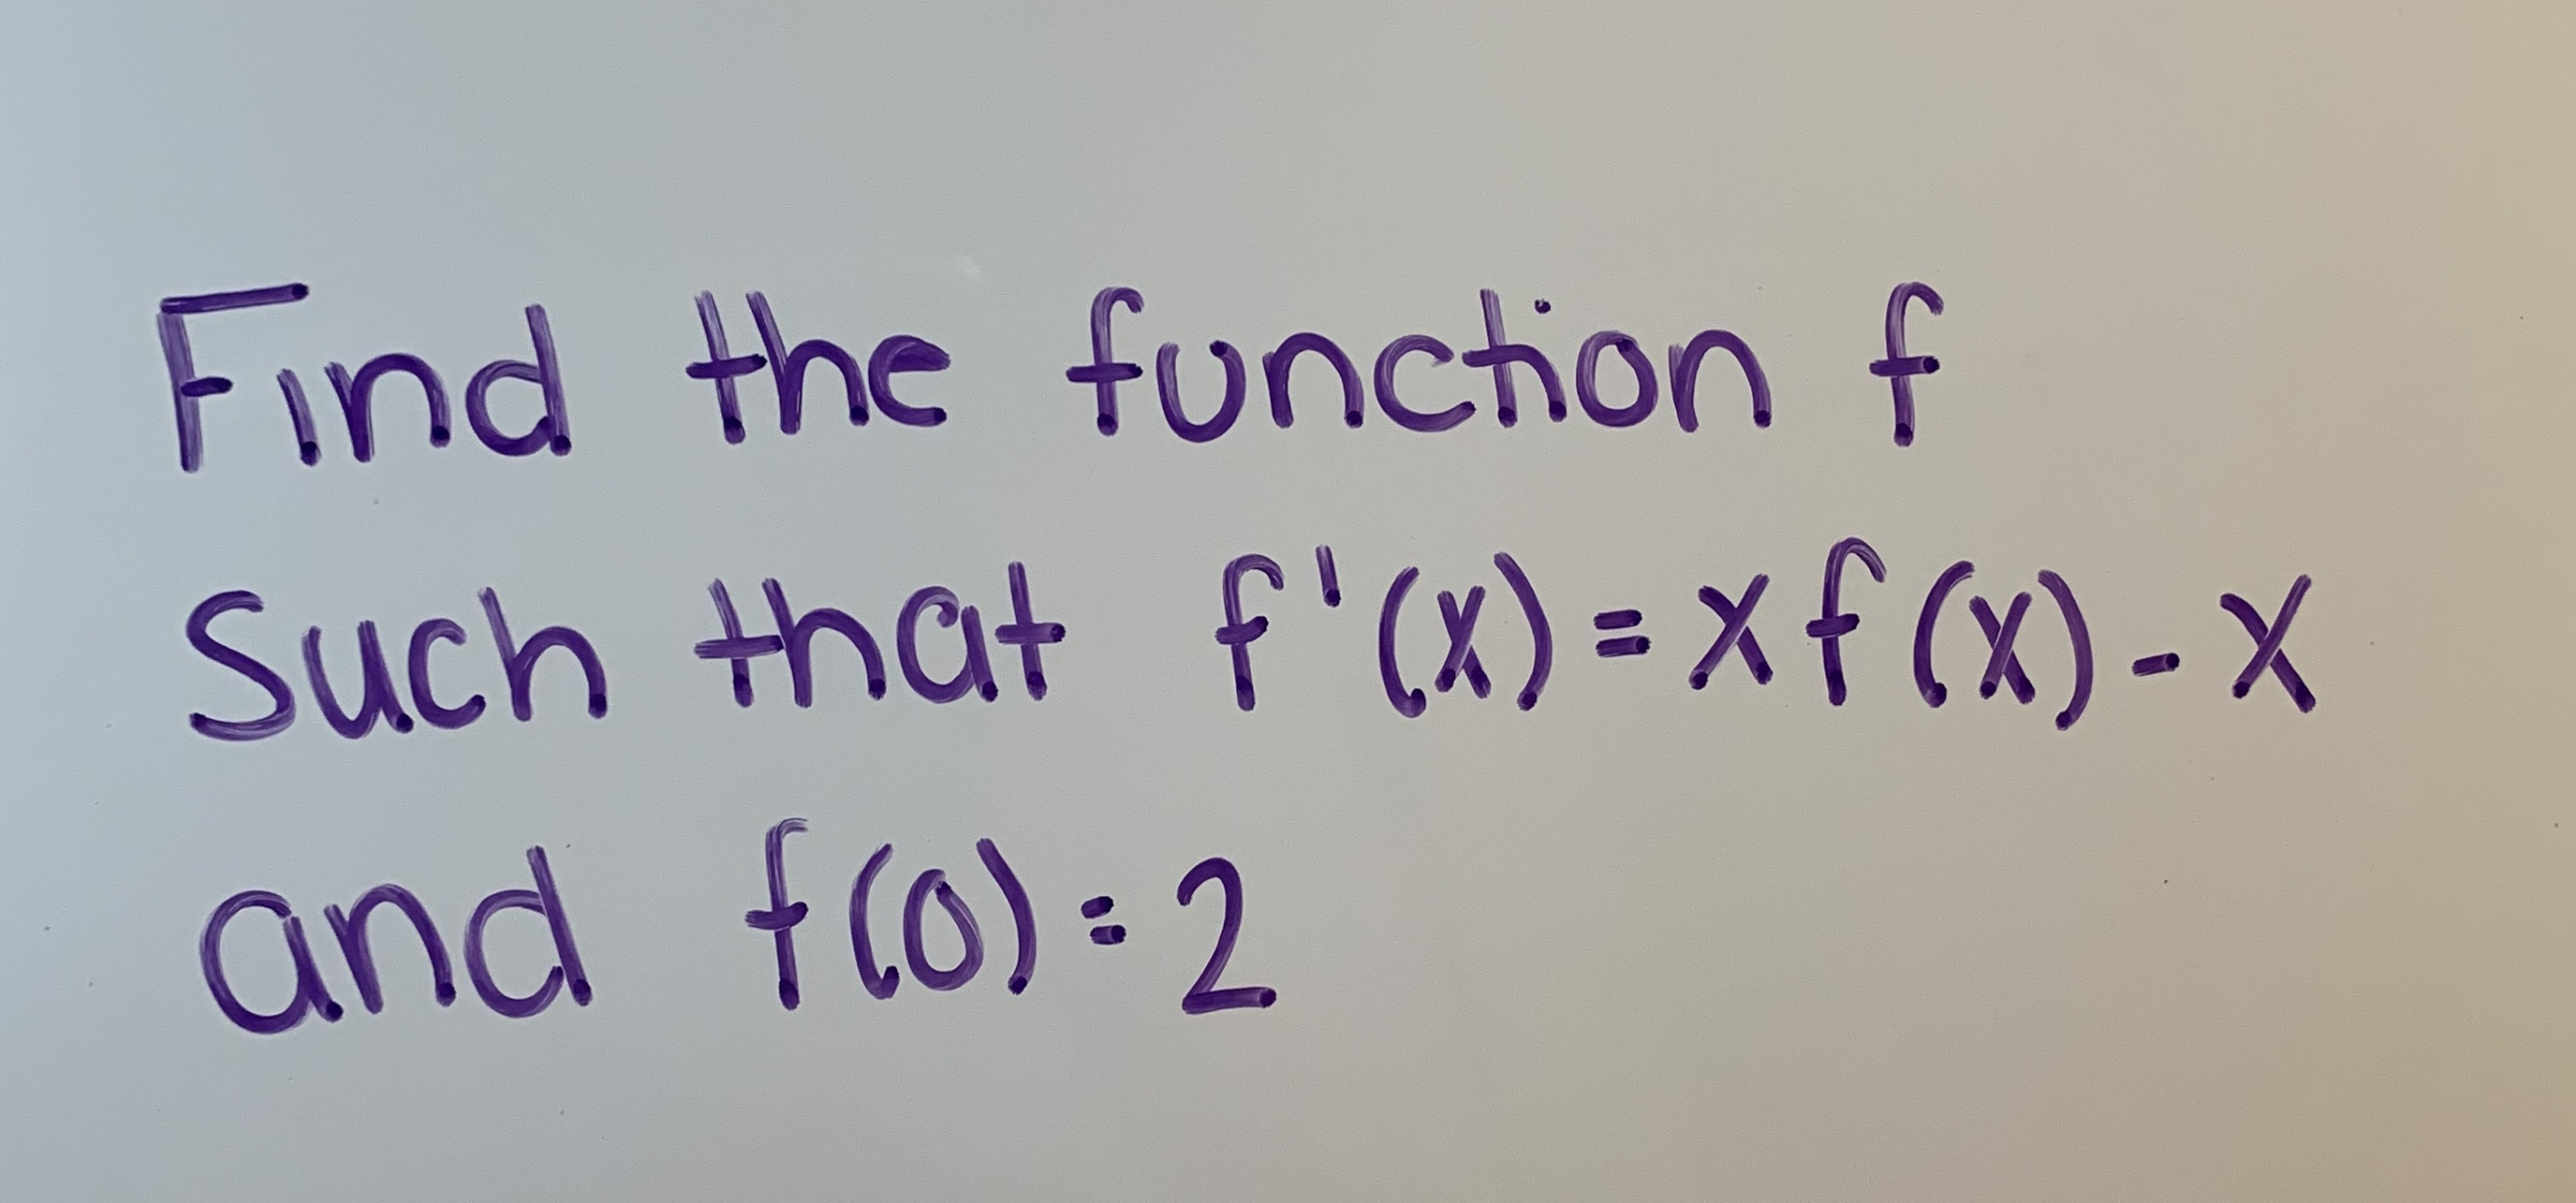 Find the funchion f Such that F(x) xf (x)-x and fo) 2